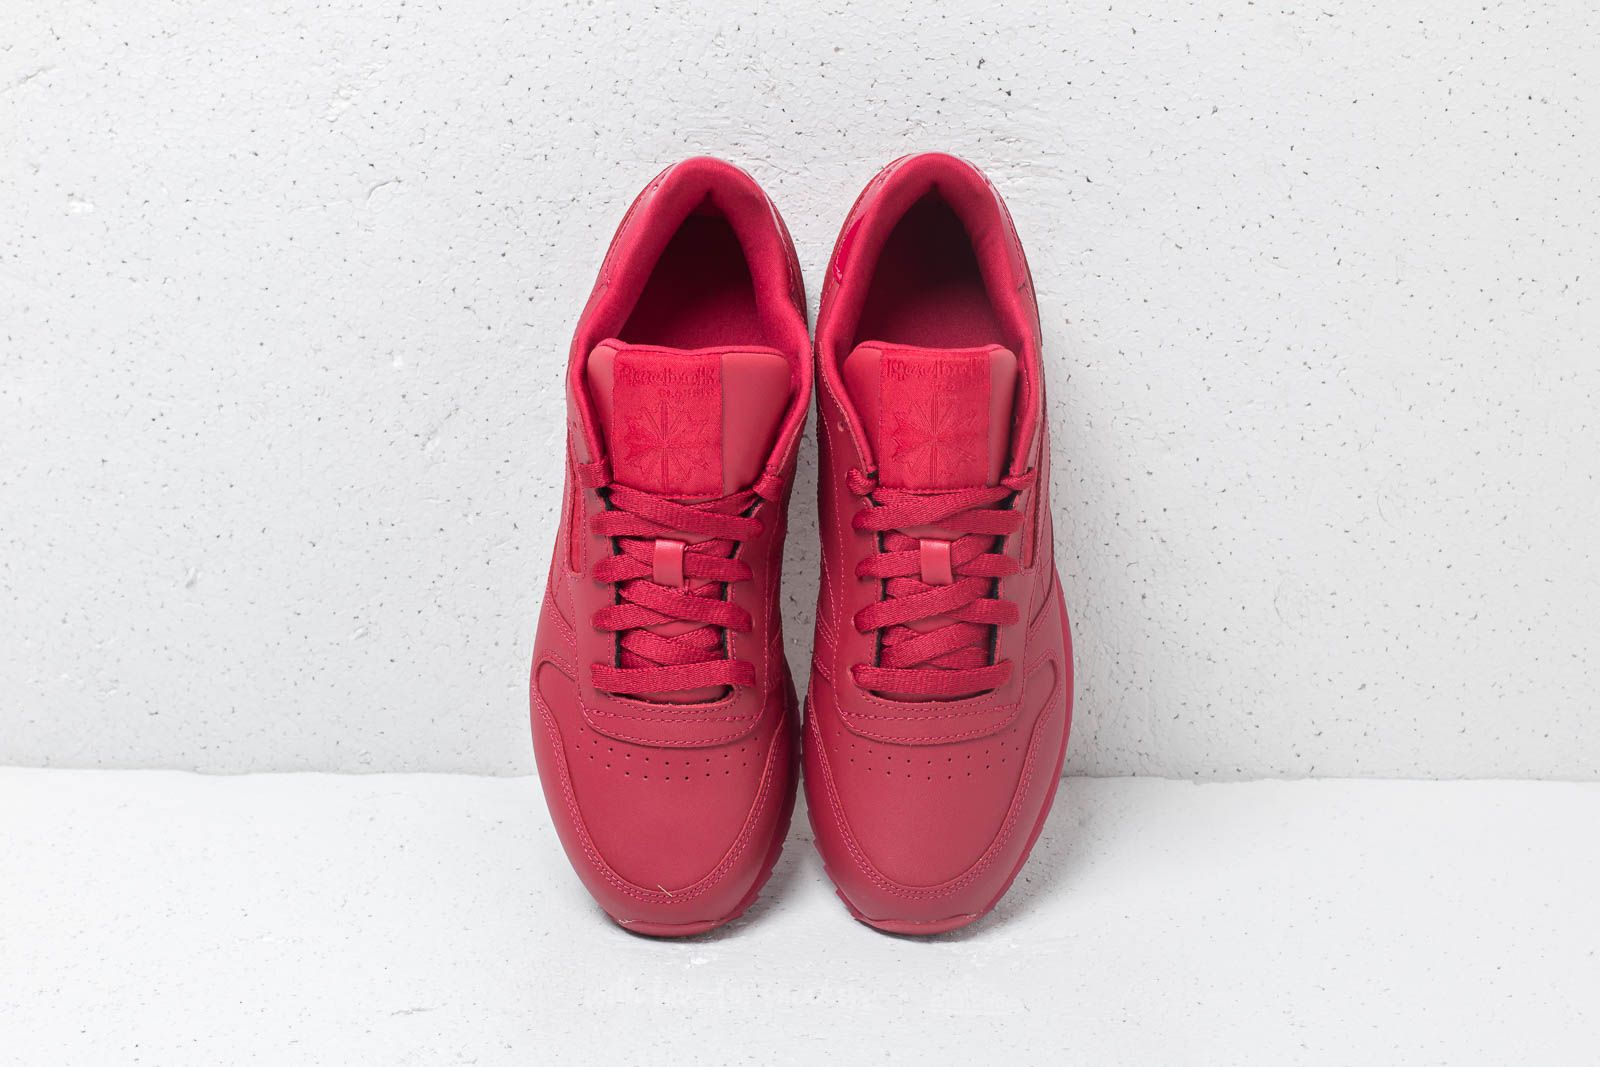 fbbcb1e5c8b471 Reebok CL Leather Ripple W Cranberry Red at a great price £78 buy at  Footshop